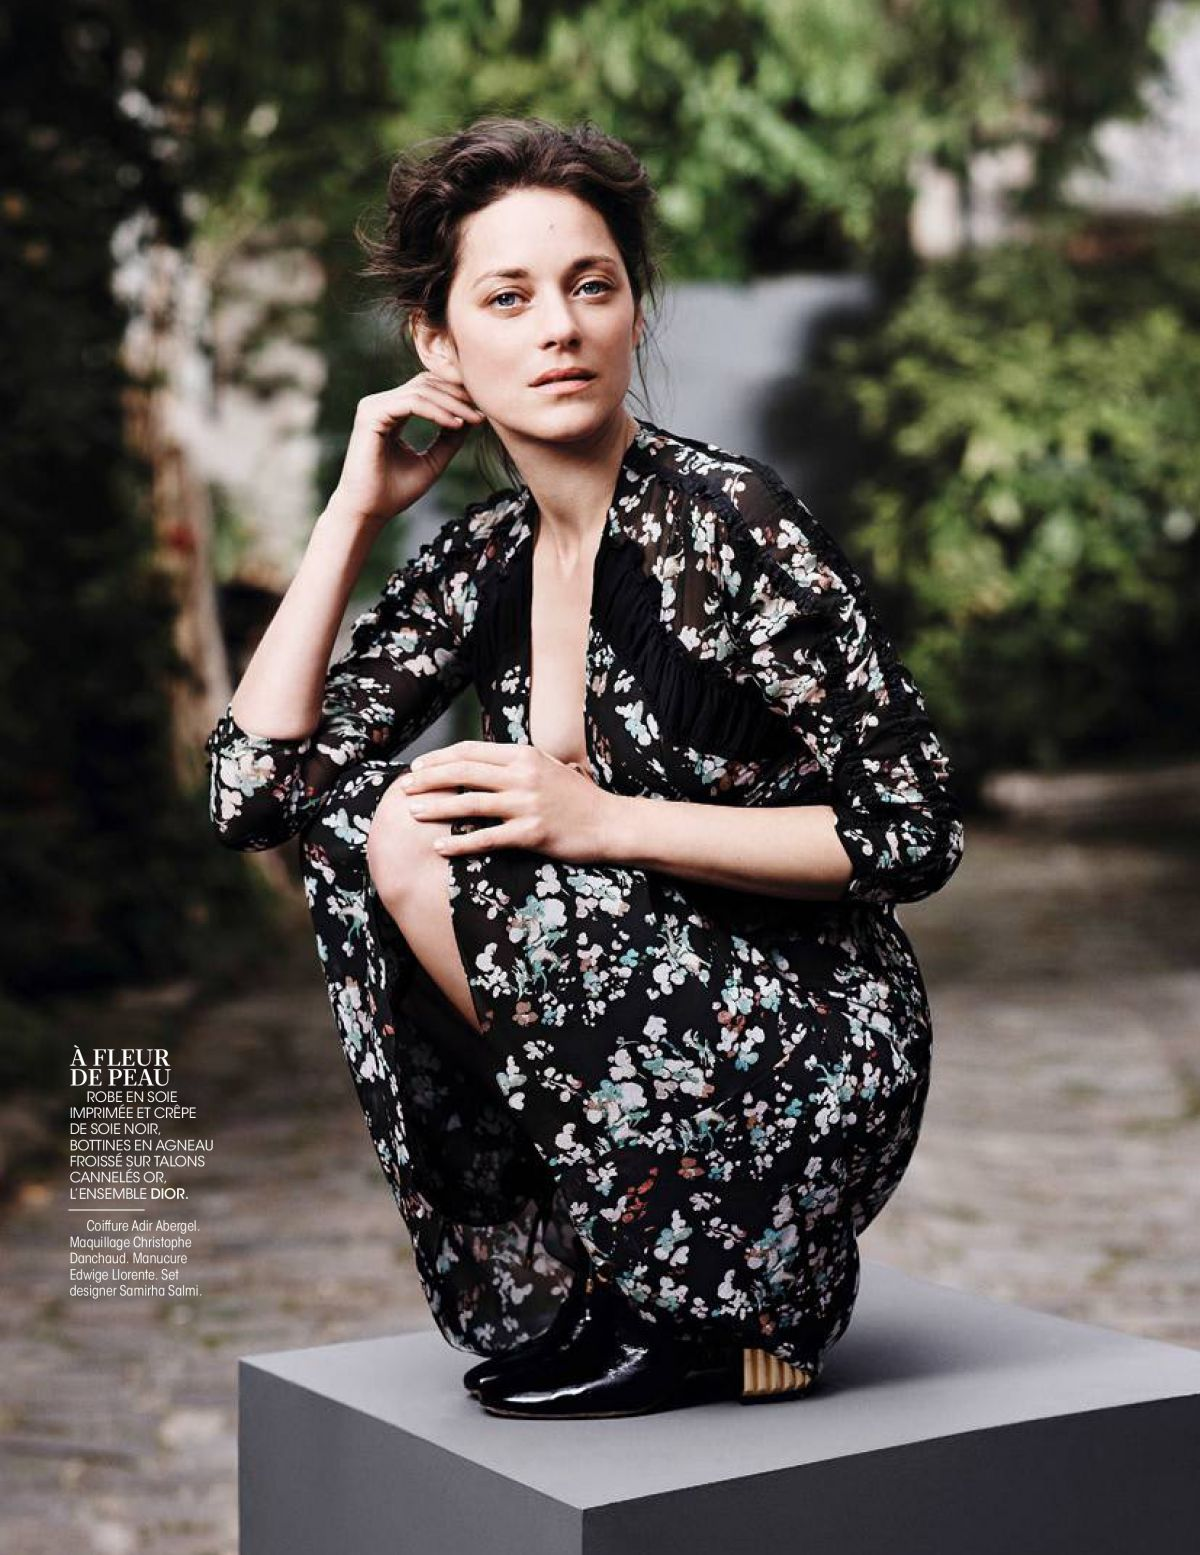 MARION COTILLARD in Madame Figaro Magazine, France September 2016 ...